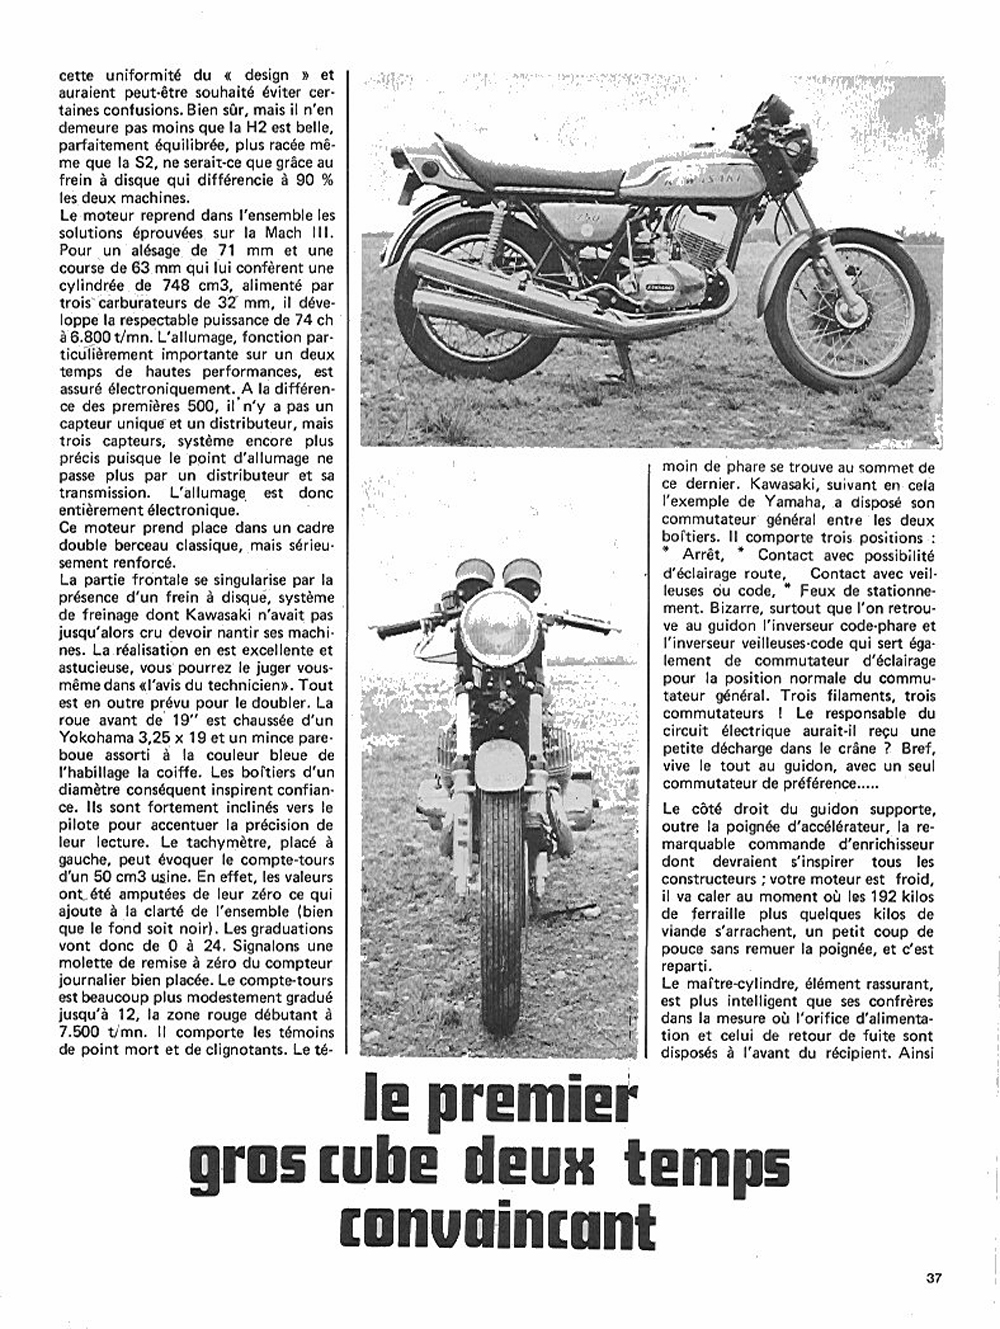 1972 Kawasaki H2 750 road test france 02.jpg